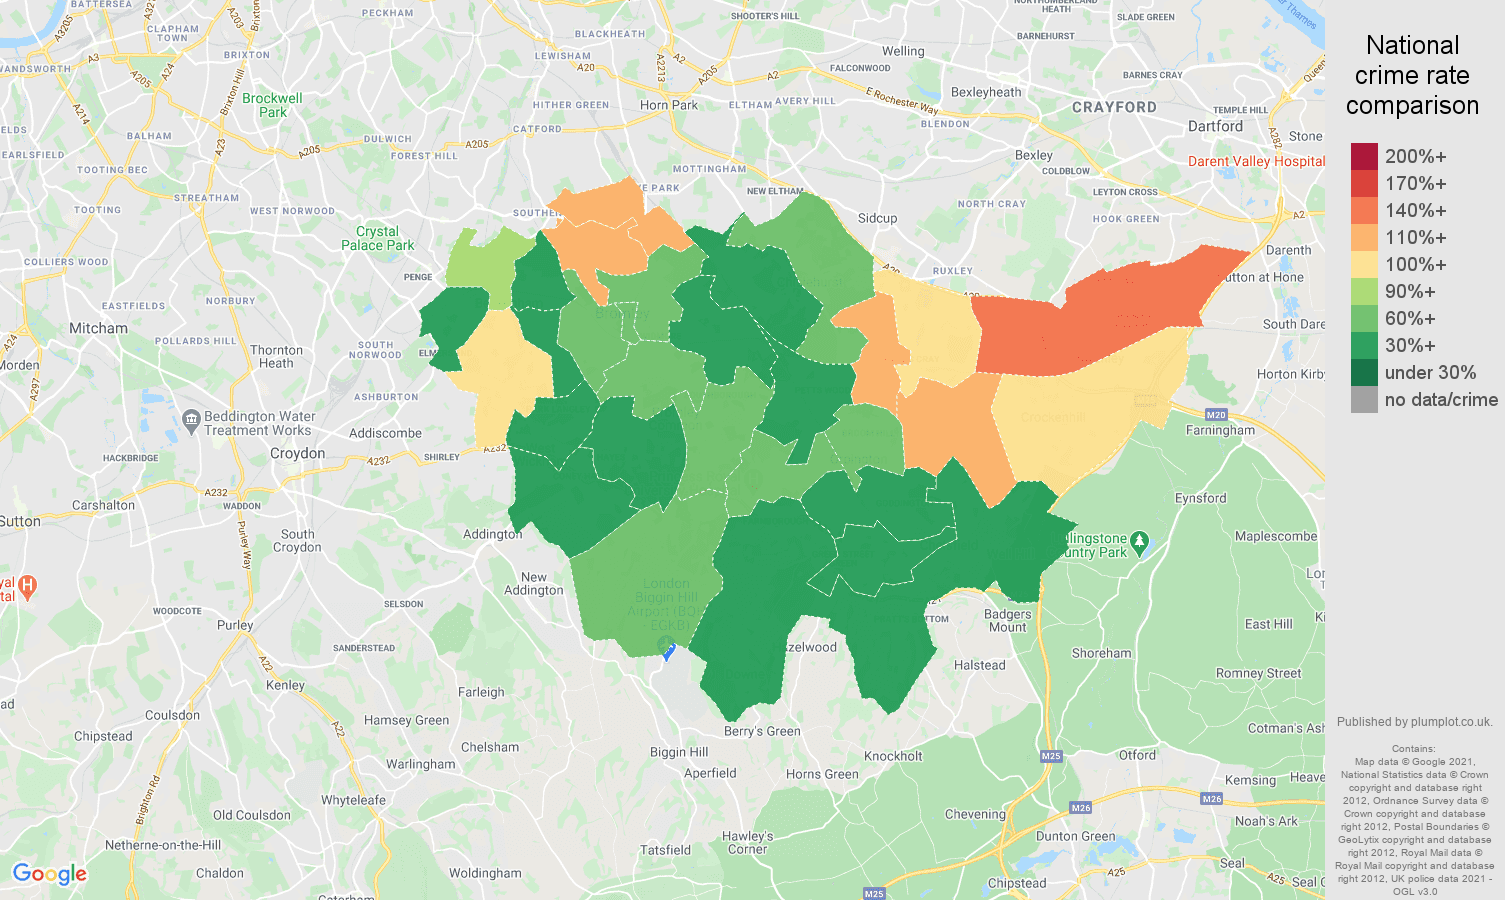 Bromley violent crime rate comparison map